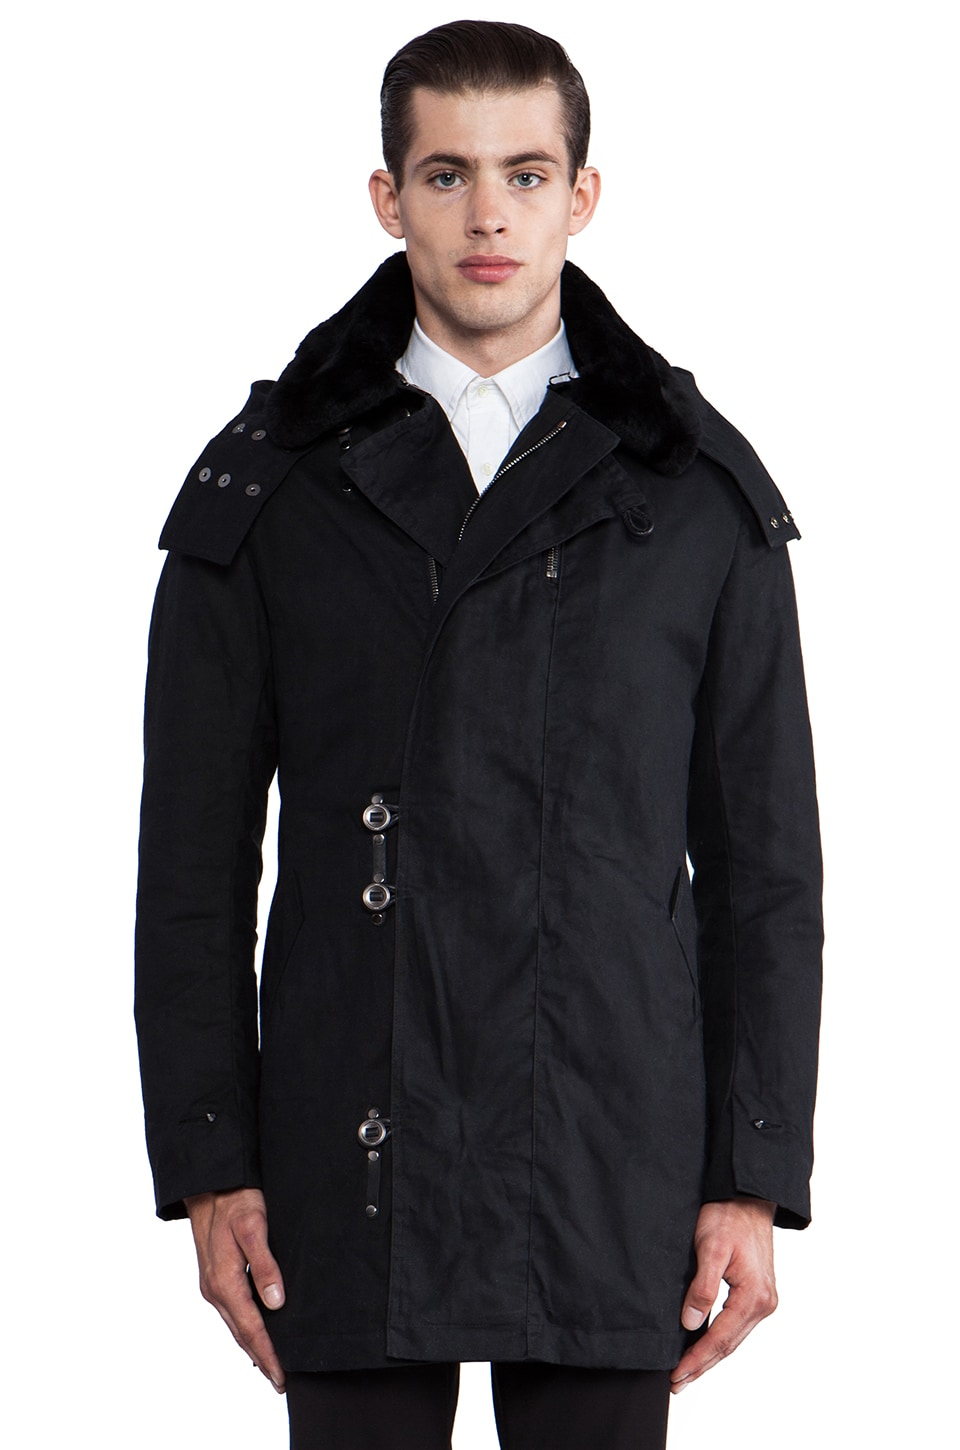 KRANE Jonas Officer's Coat in Black